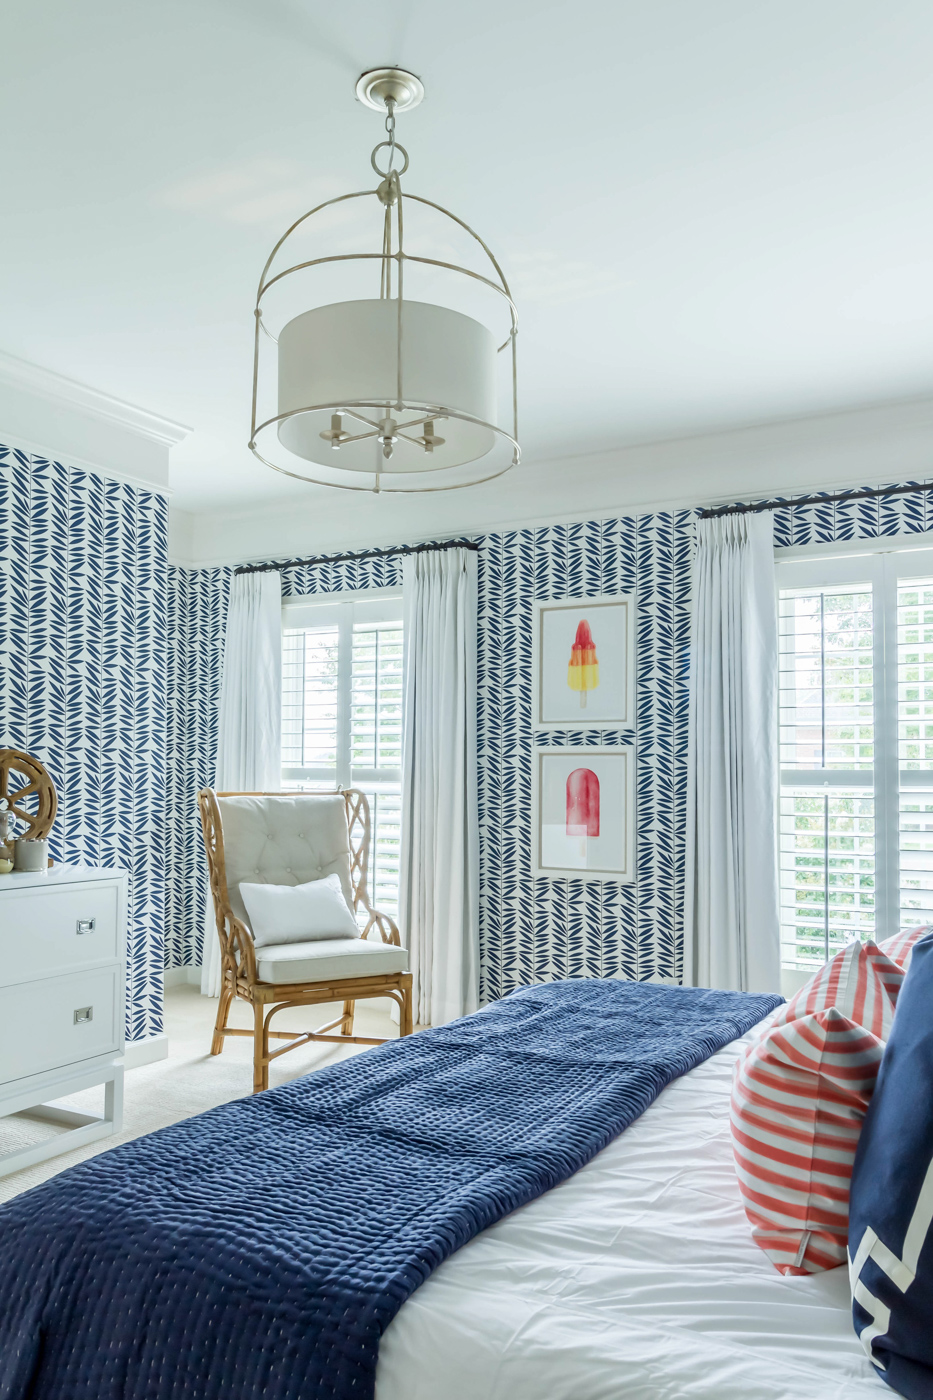 Eclectic Home Tour - love this blue graphic wallpaper, rattan furniture and popsicle art #bedroom #bluebedroom #bedroomdecor #wallpaper